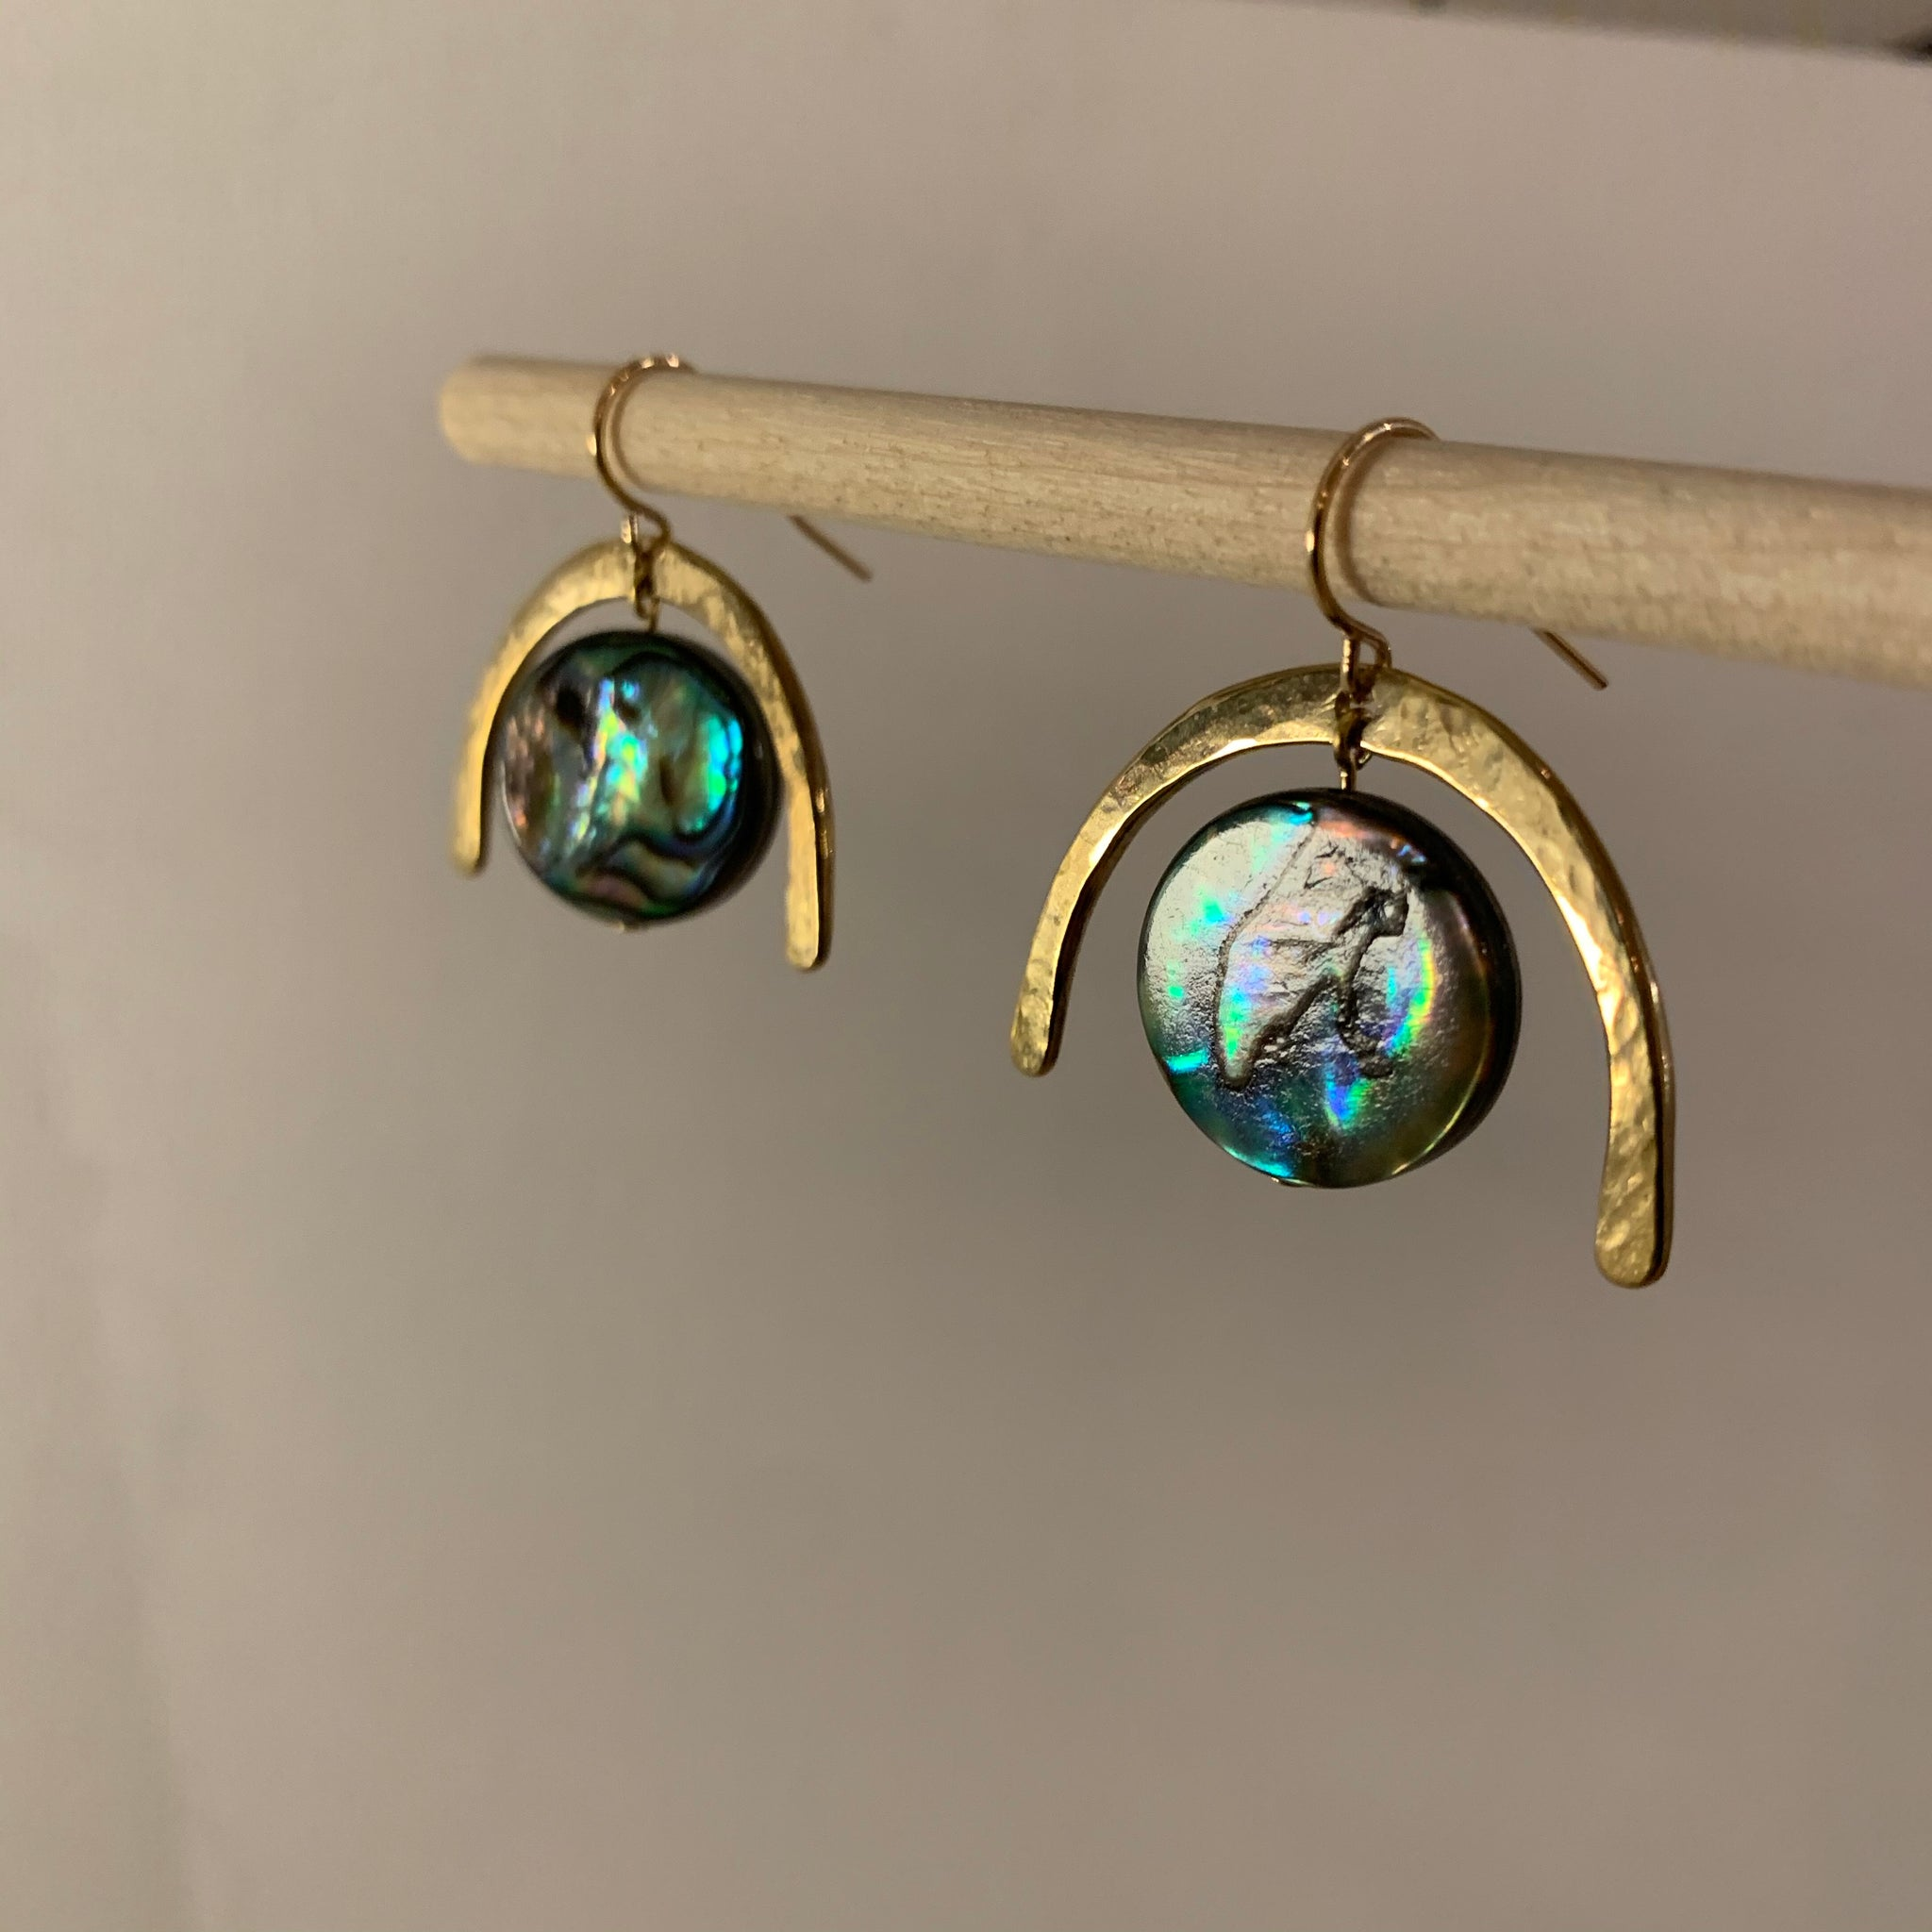 Son of a Sailor Earrings